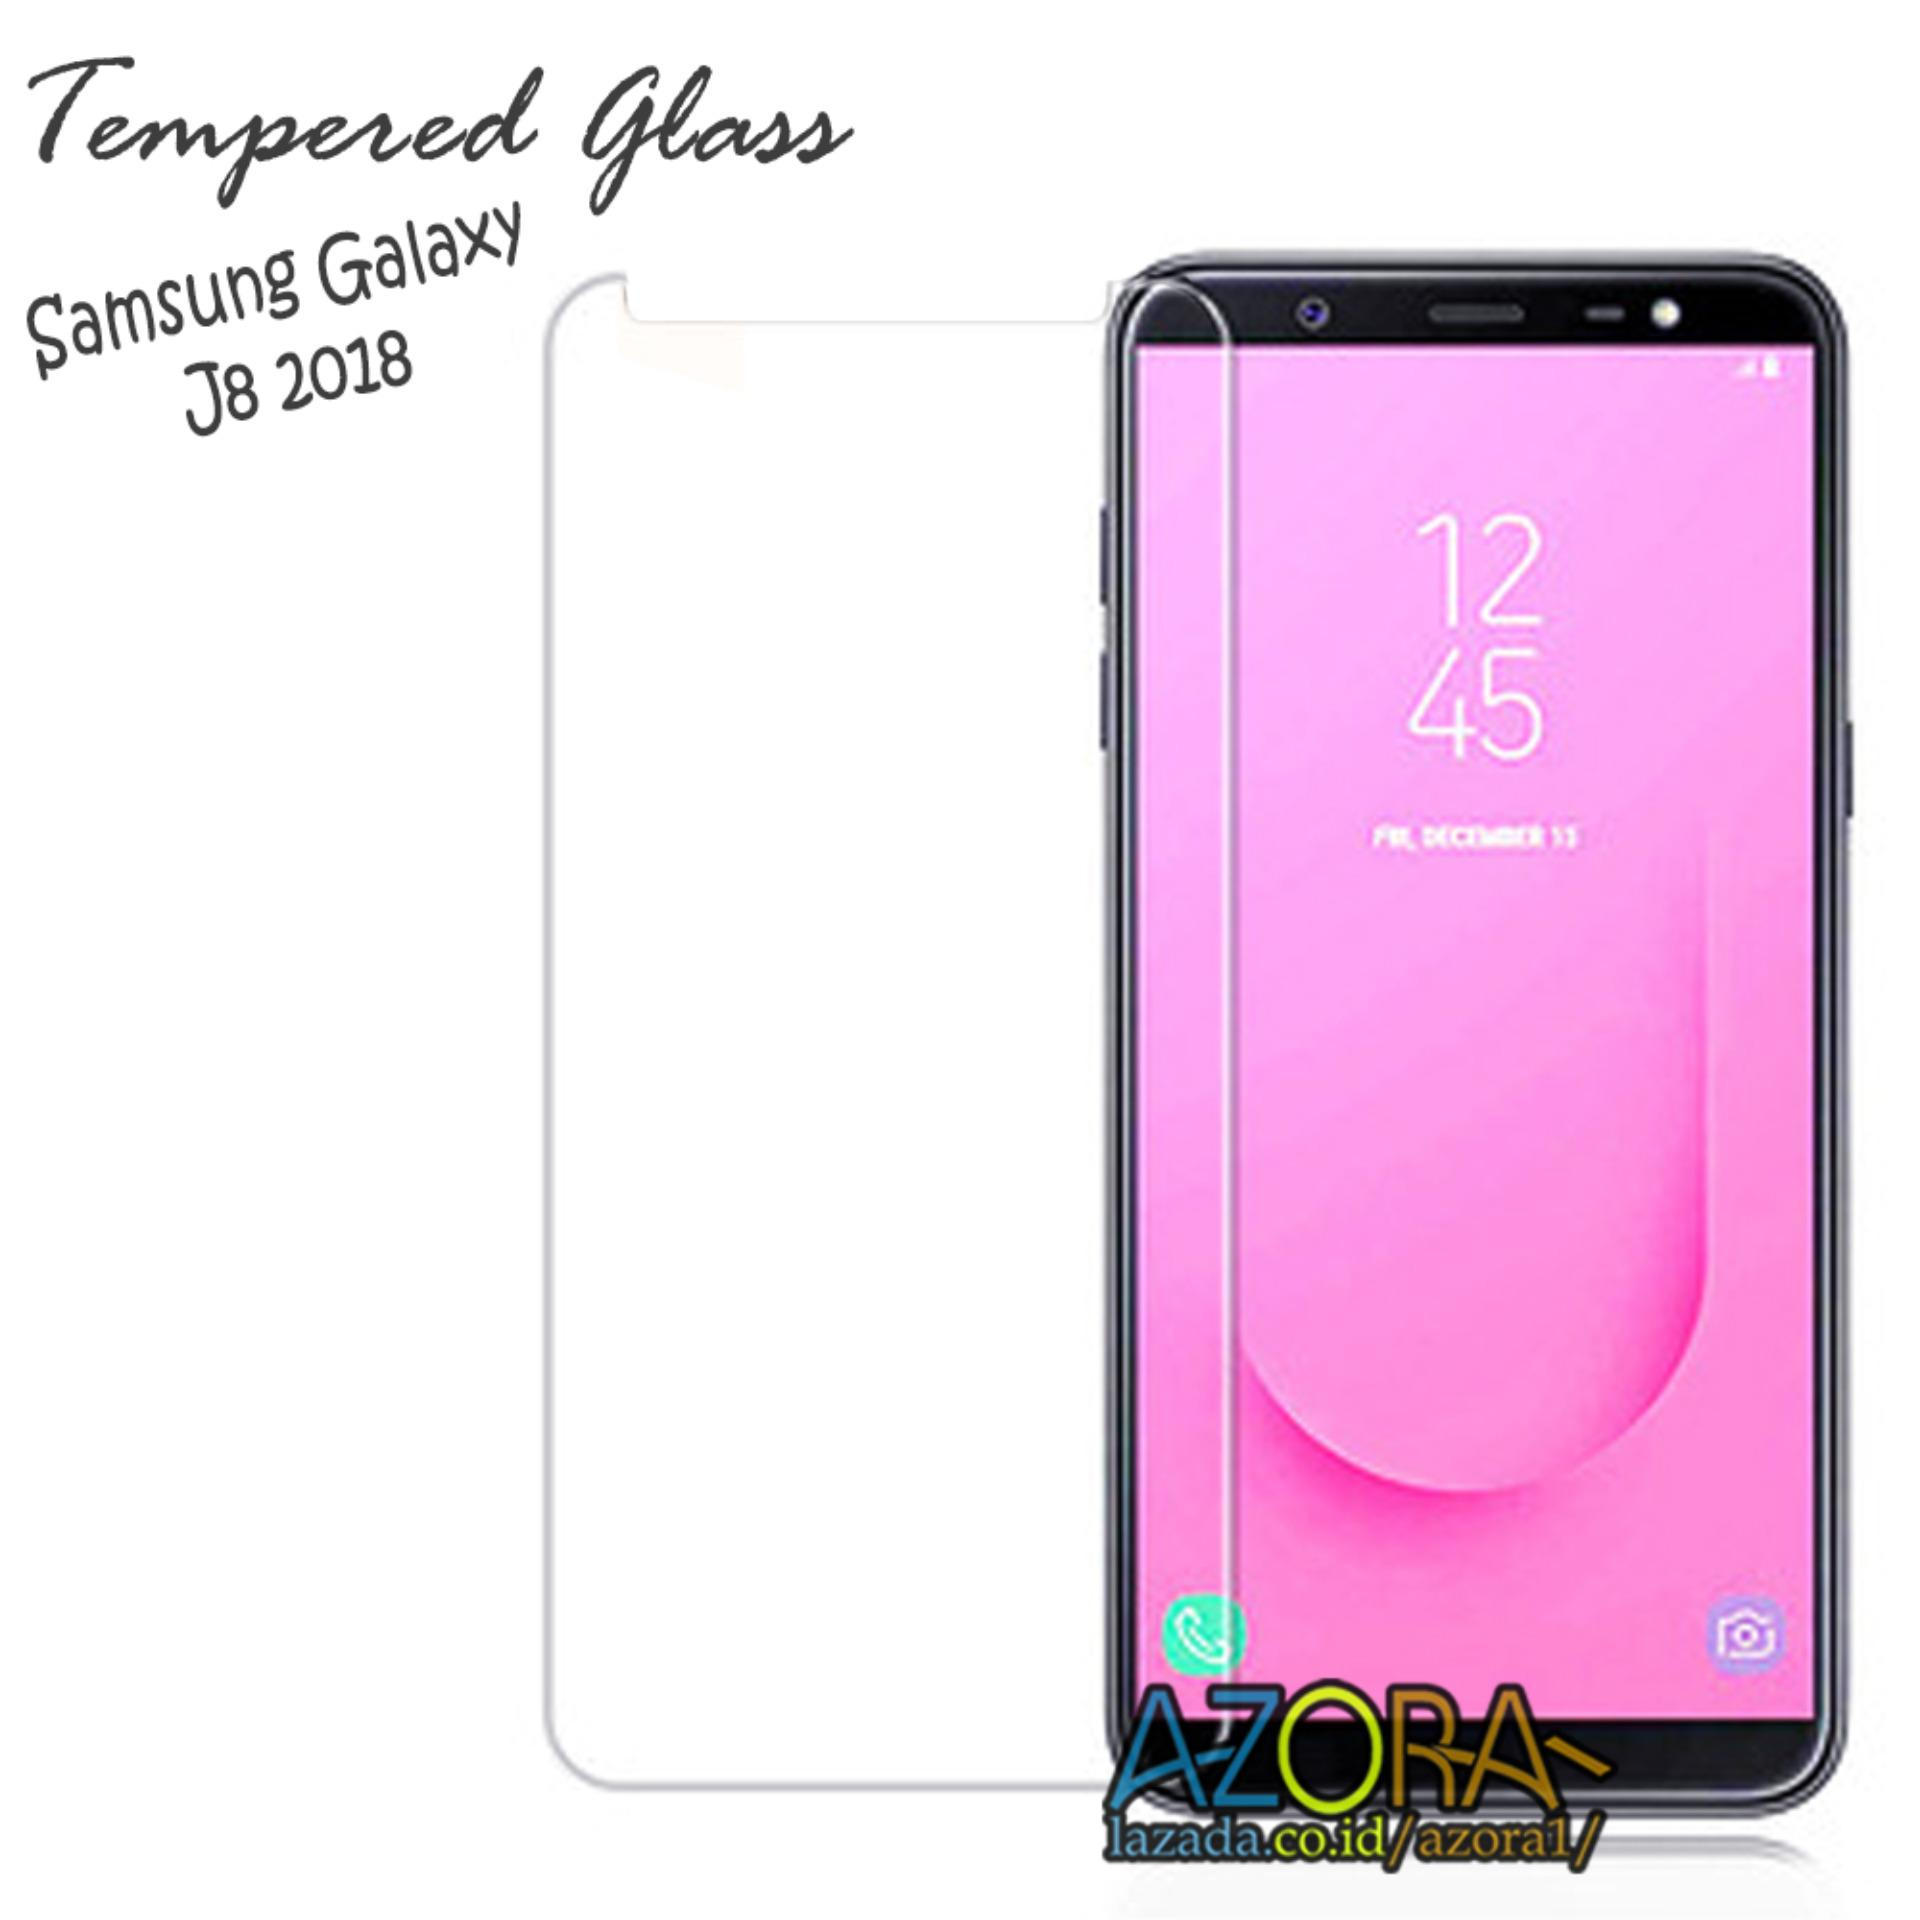 Tempered Glass Samsung Galaxy J8 2018 Screen Protector Pelindung Layar Kaca Anti Gores Bening